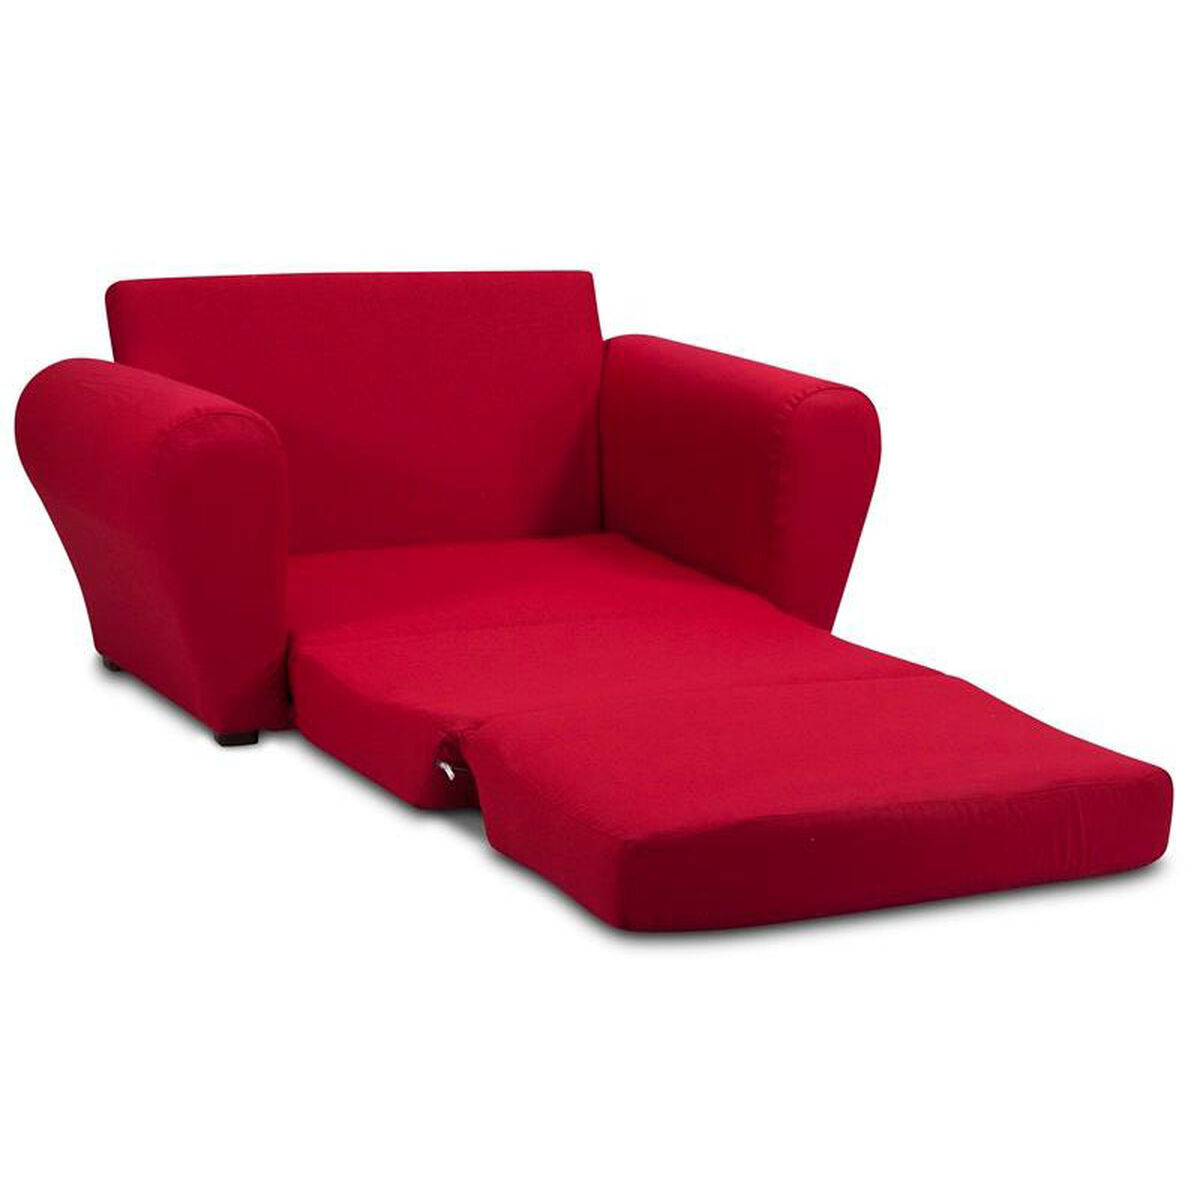 Our Kids Case Ih International Harvester Red Sleepover Sofa Is On Now